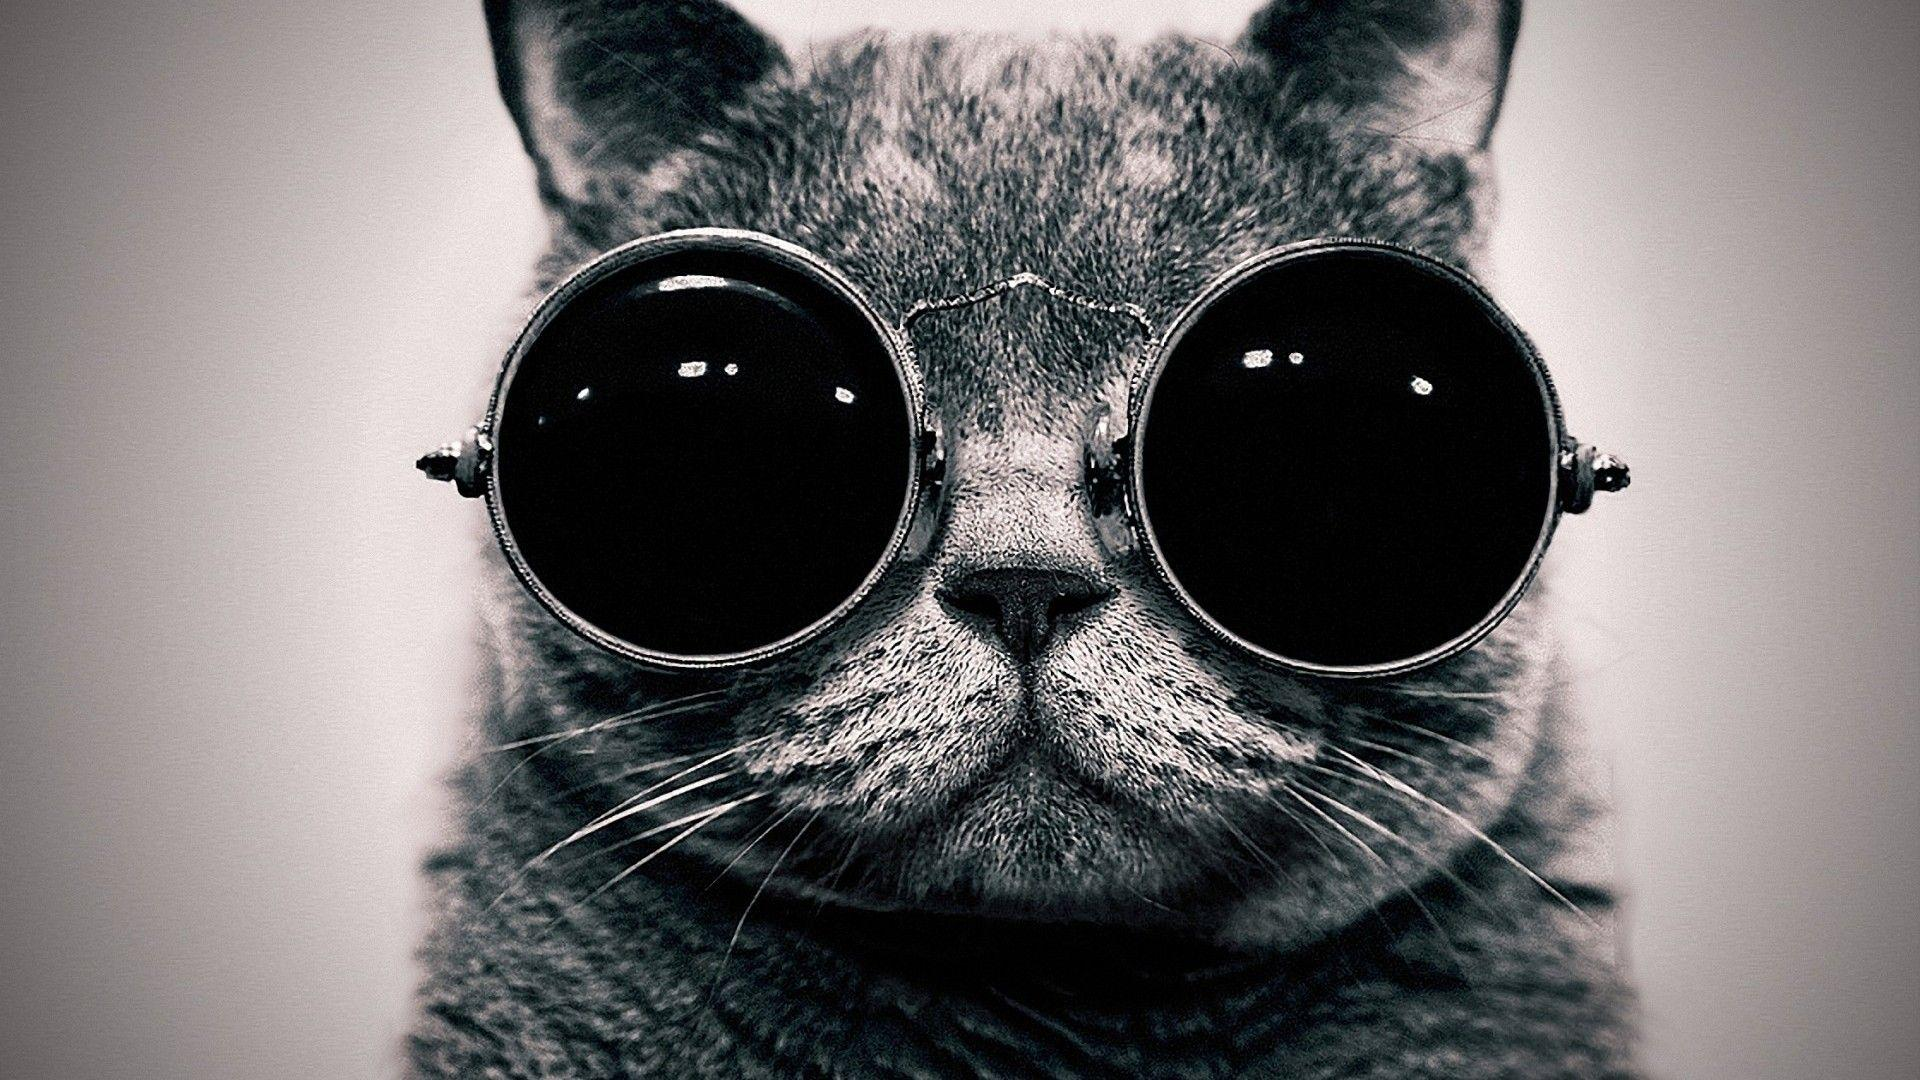 Funny Black Cat Pictures Background Hd Wallpaper 1920x1080 Linus Tech Tips